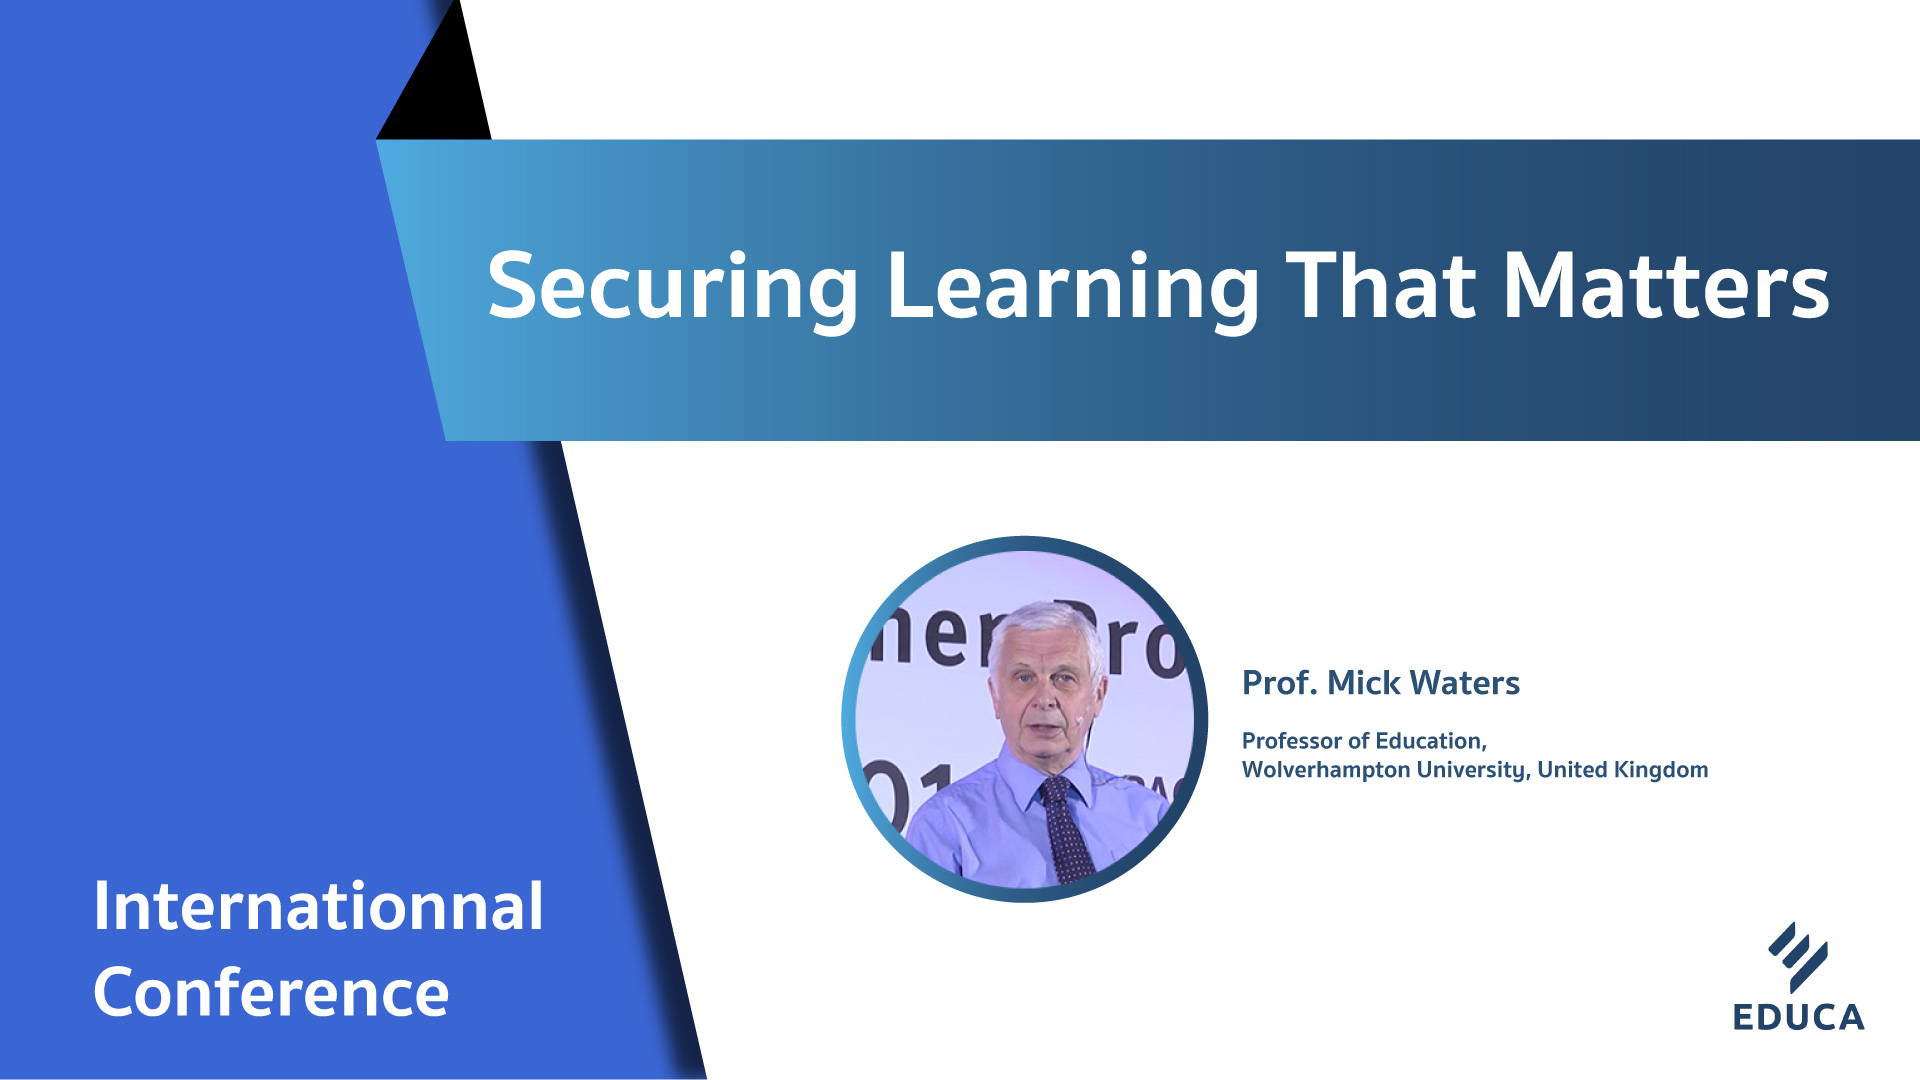 Securing Learning That Matters